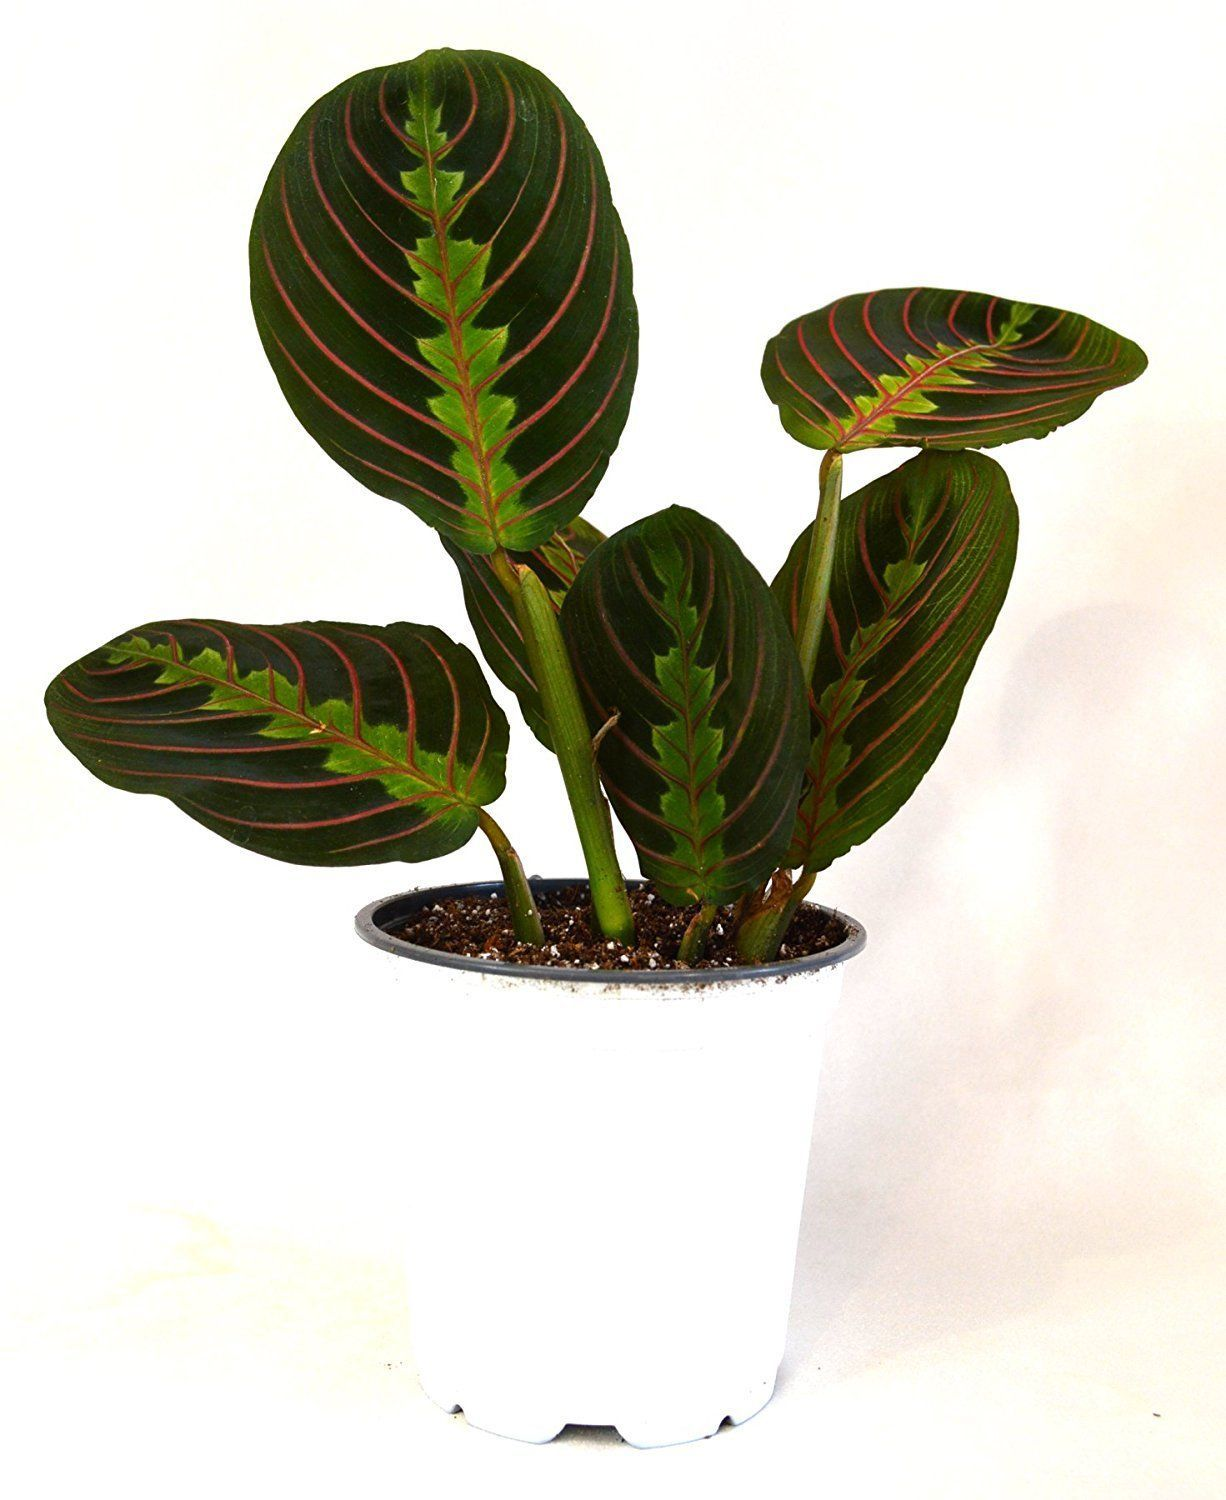 1 Plant of Red Prayer Plant/Maranta